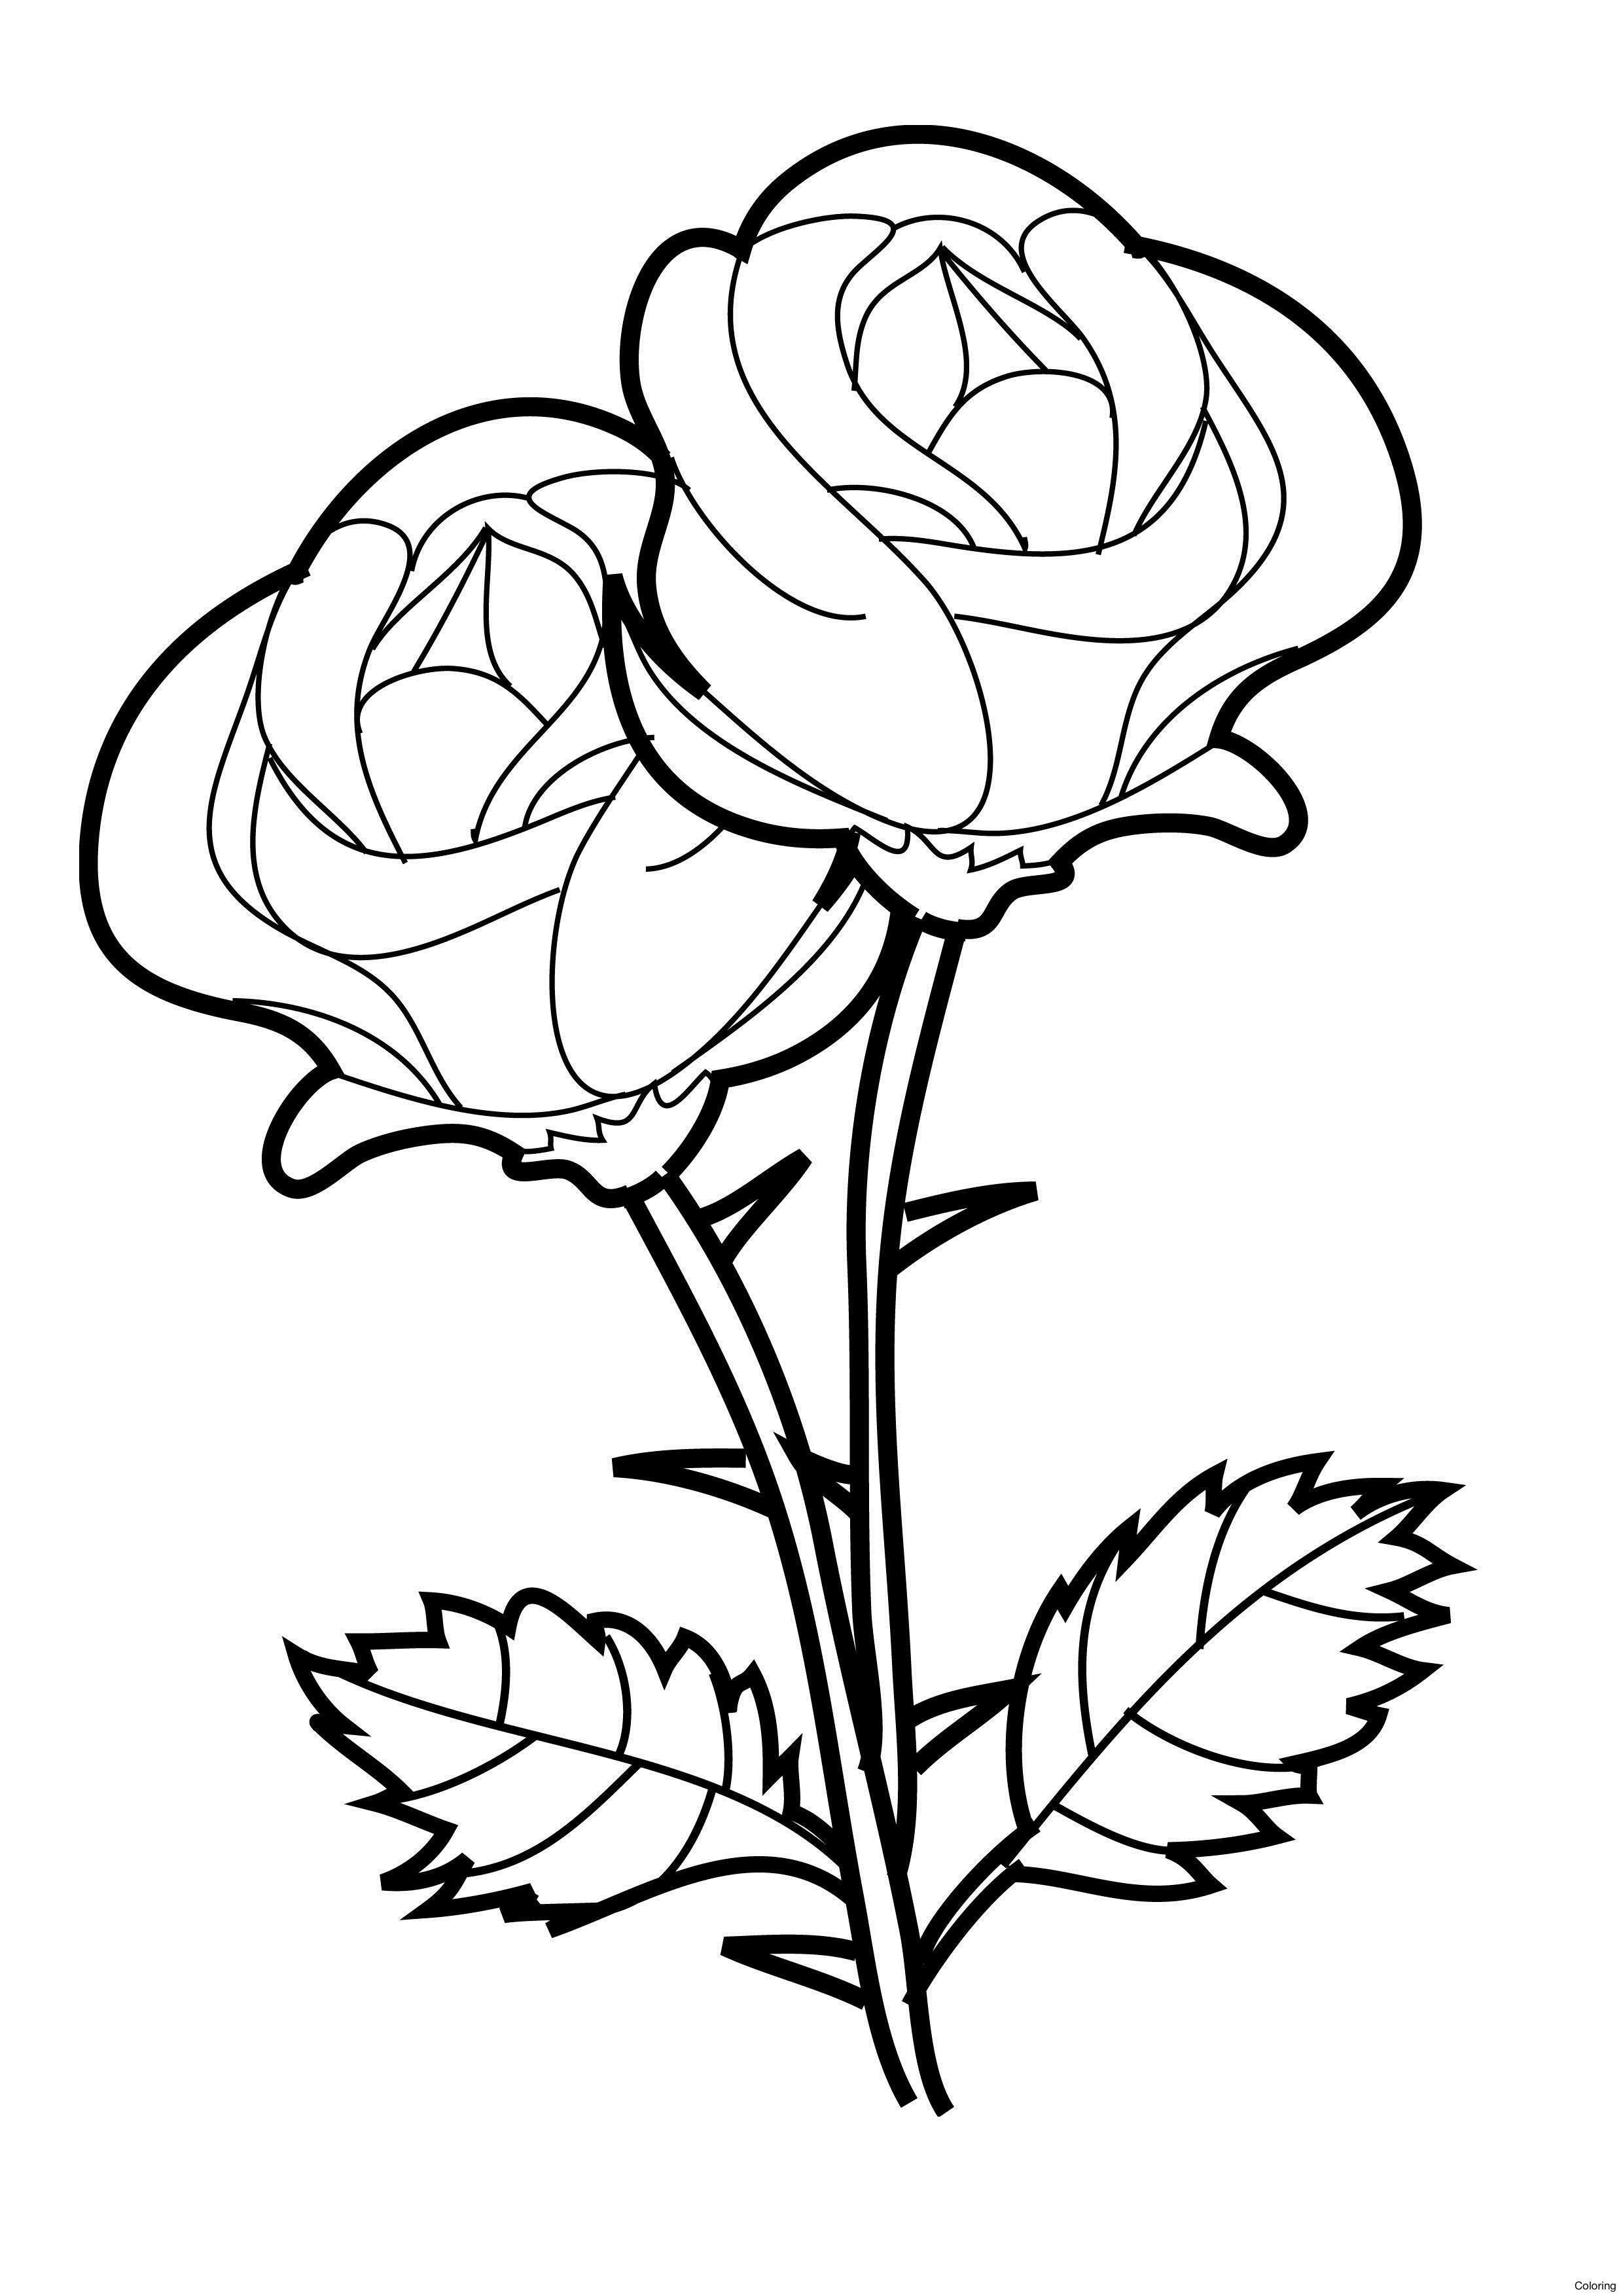 2480x3508 Rose Flower Drawing Easy Rose Drawing For Kids Rose Flower Drawing